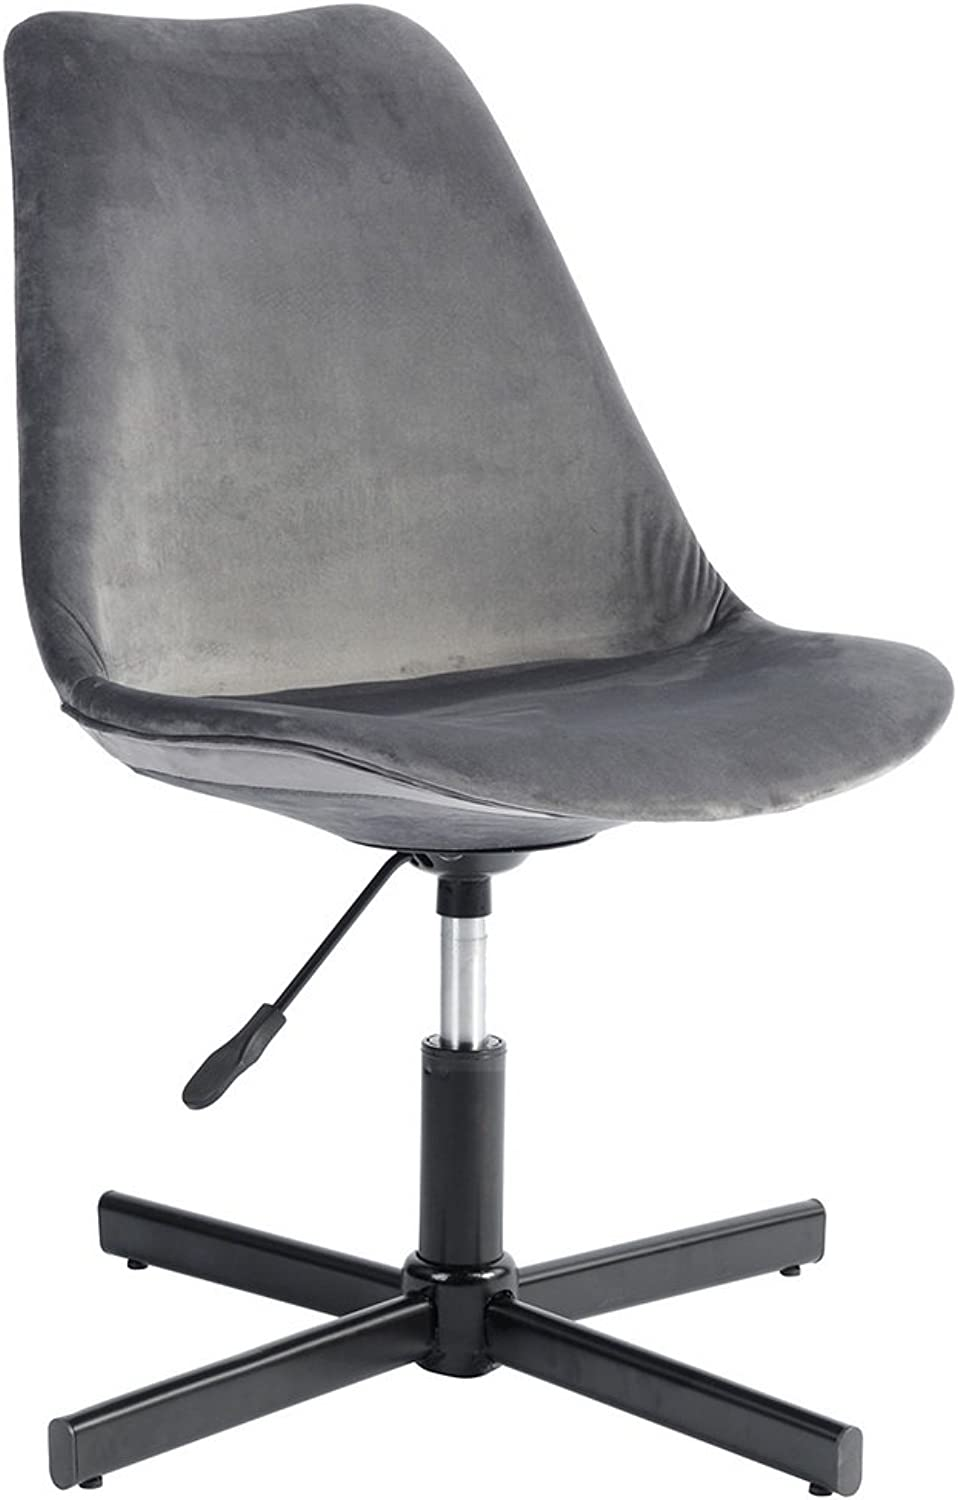 Astounding Ihouse Mid Back Swivel Computer Desk Chair Ergonomic Modern Gmtry Best Dining Table And Chair Ideas Images Gmtryco